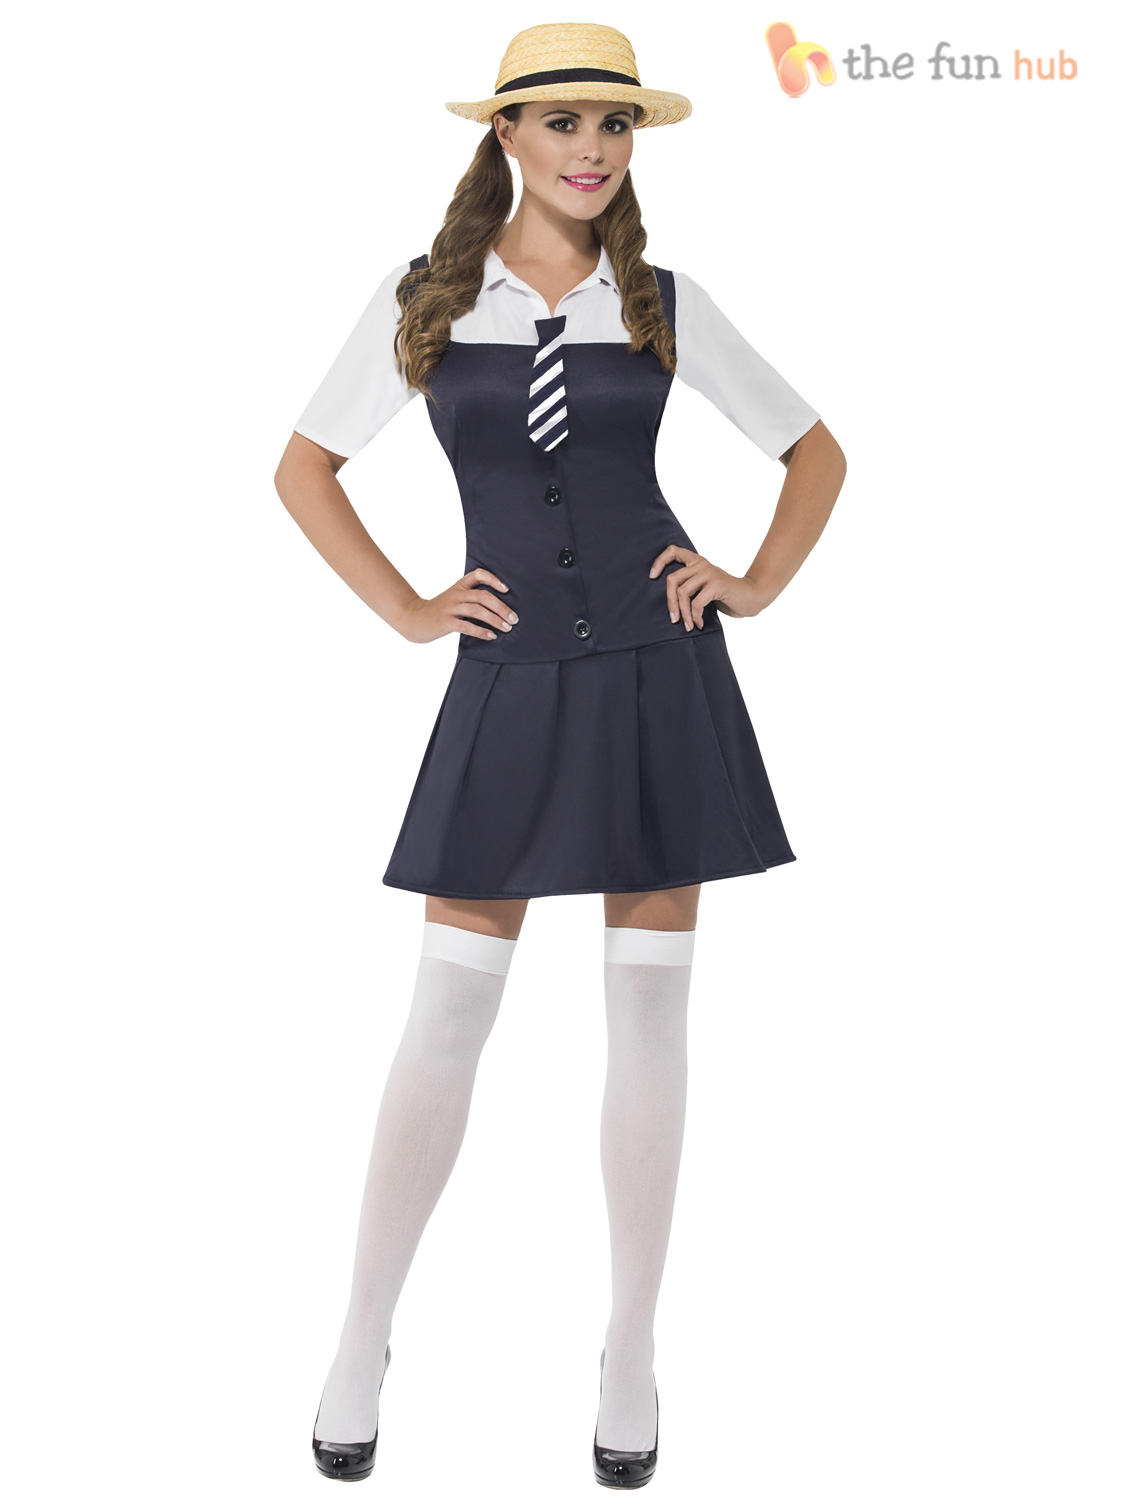 Ladies-Sexy-School-Girl-Schoolgirl-Uniform-St-Trinians-Hen-Fancy-Dress-Boater